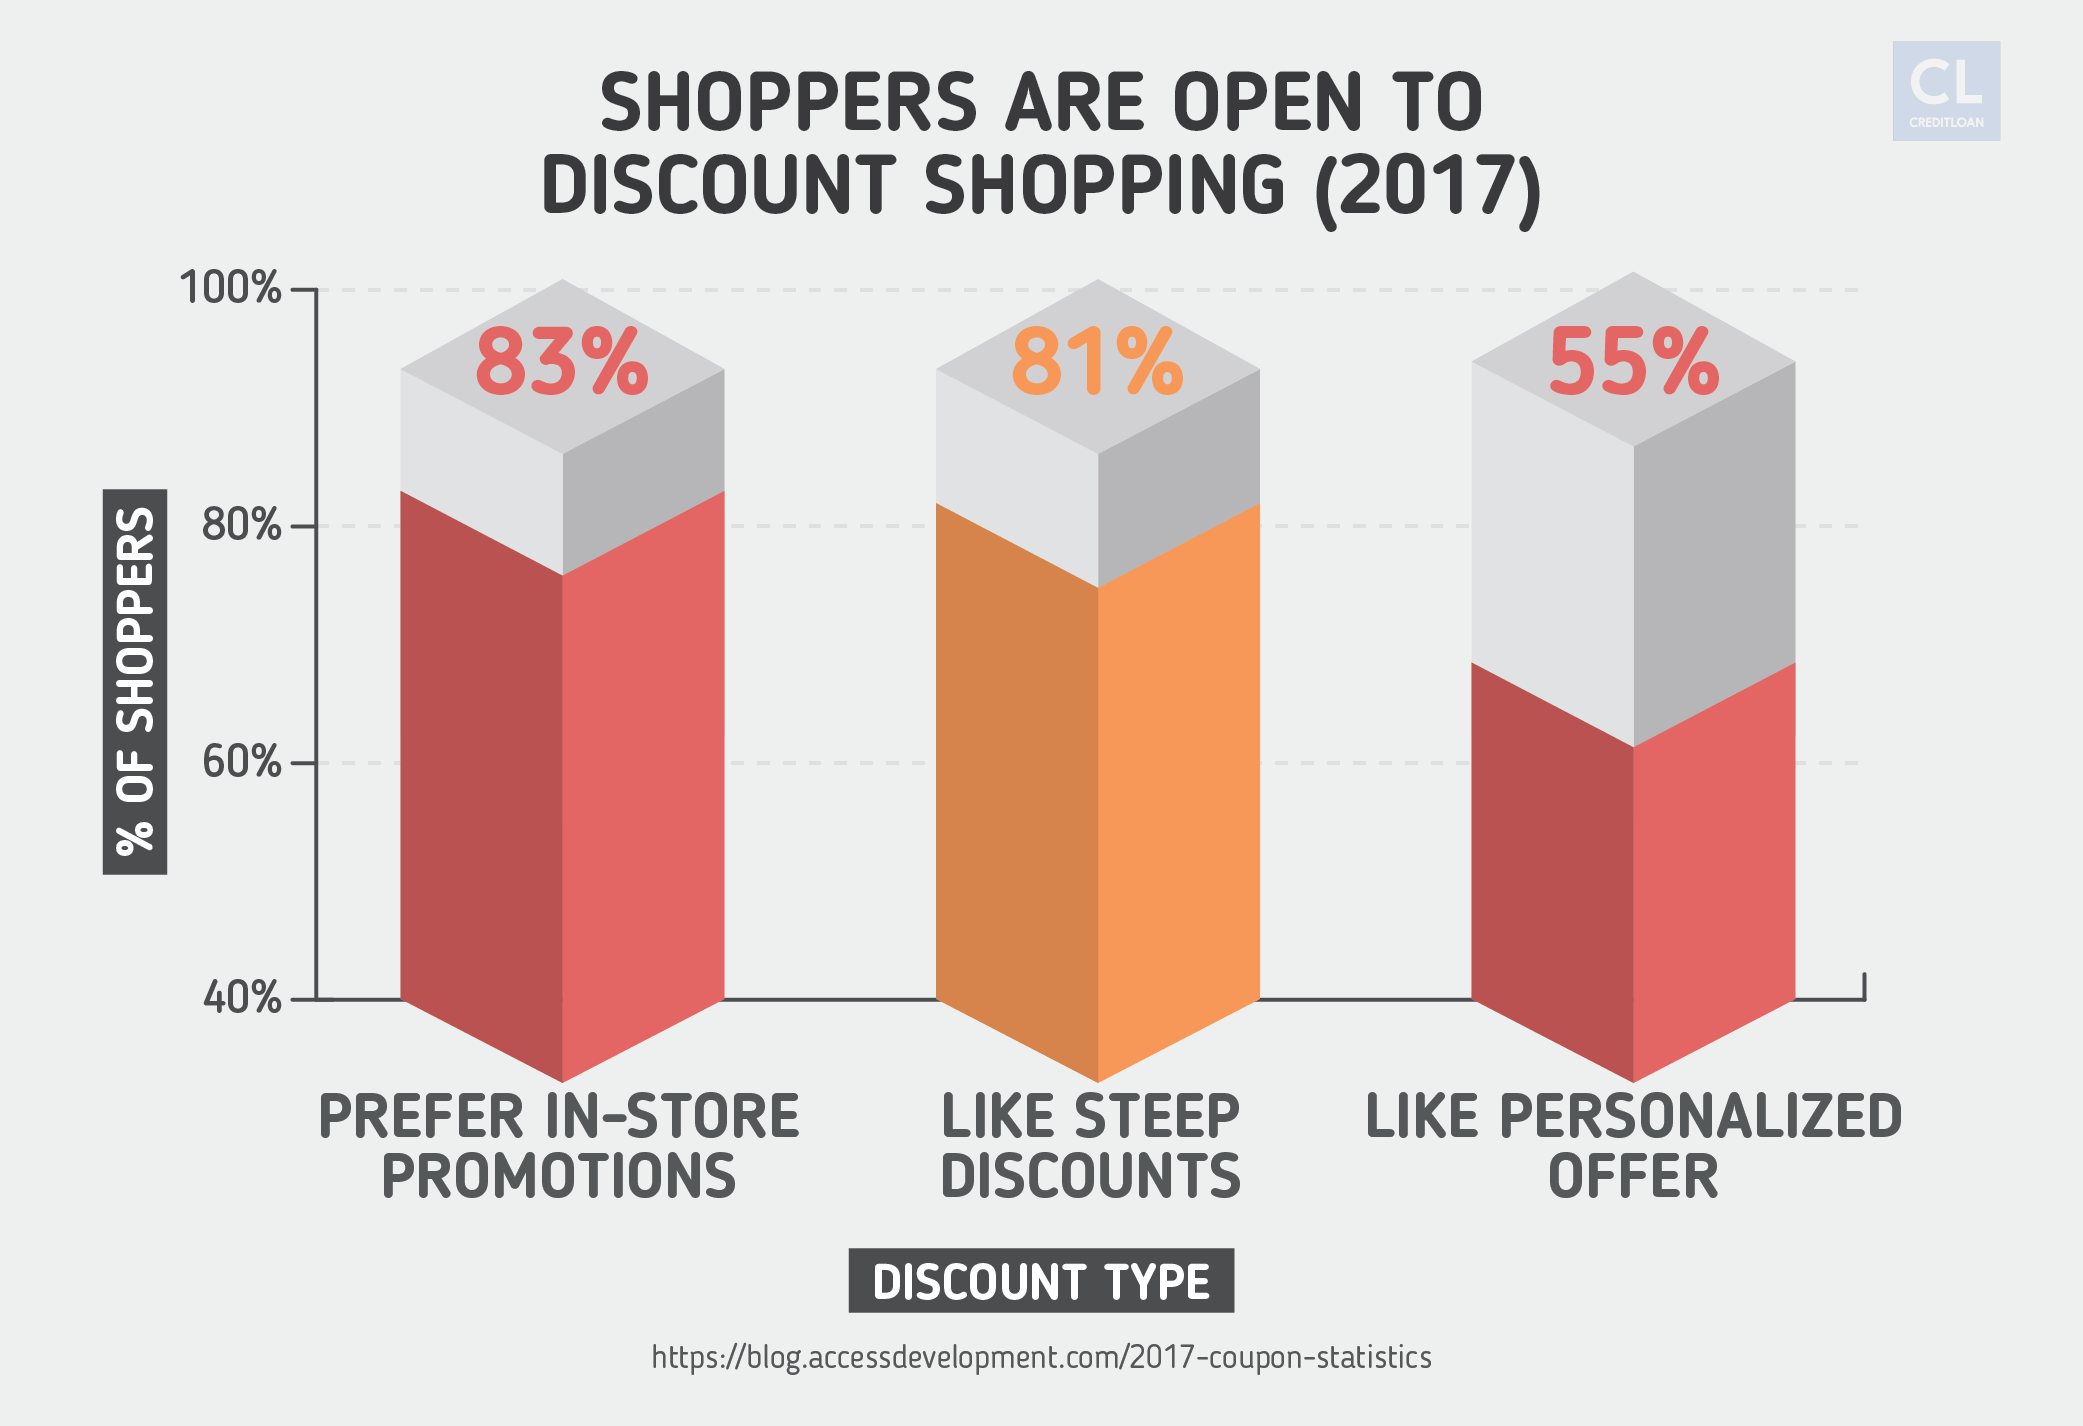 Survey: Shoppers Are Open to Discount Shopping